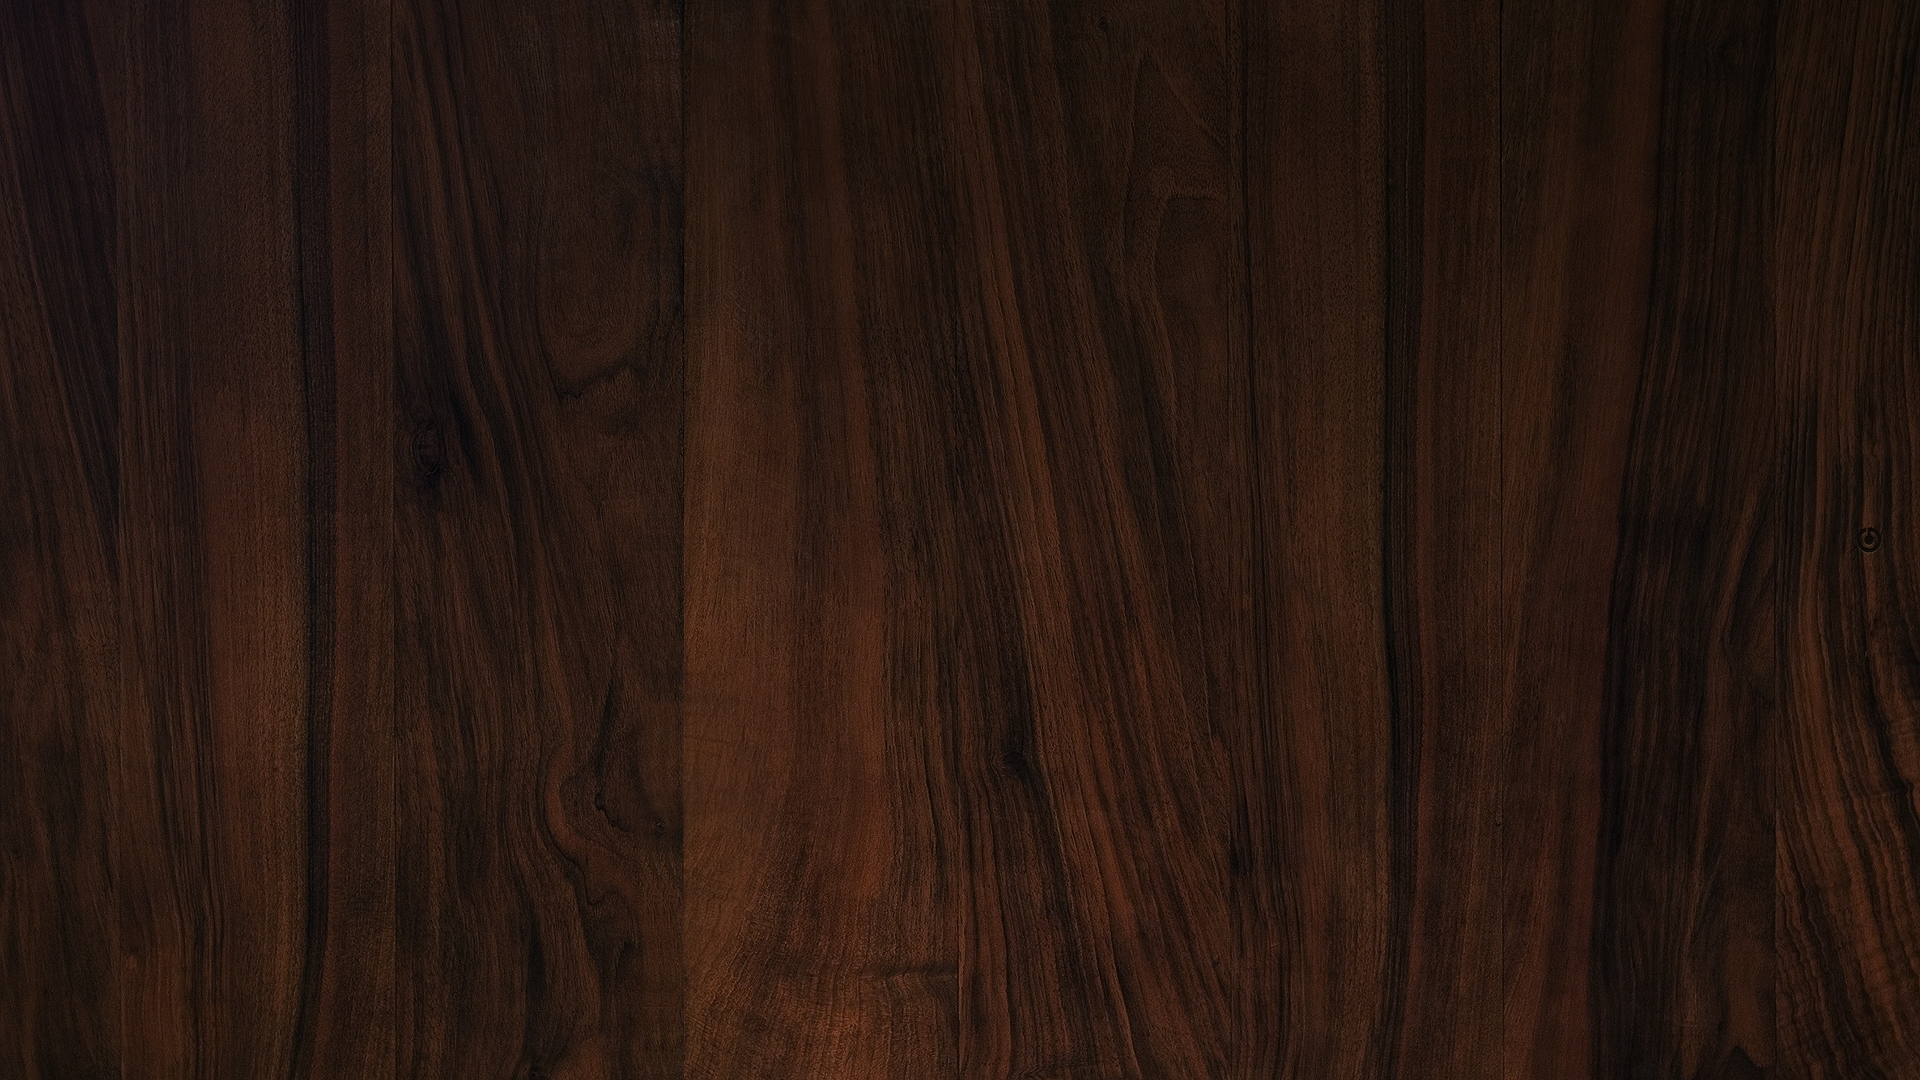 wallpaper wood 2 - photo #9